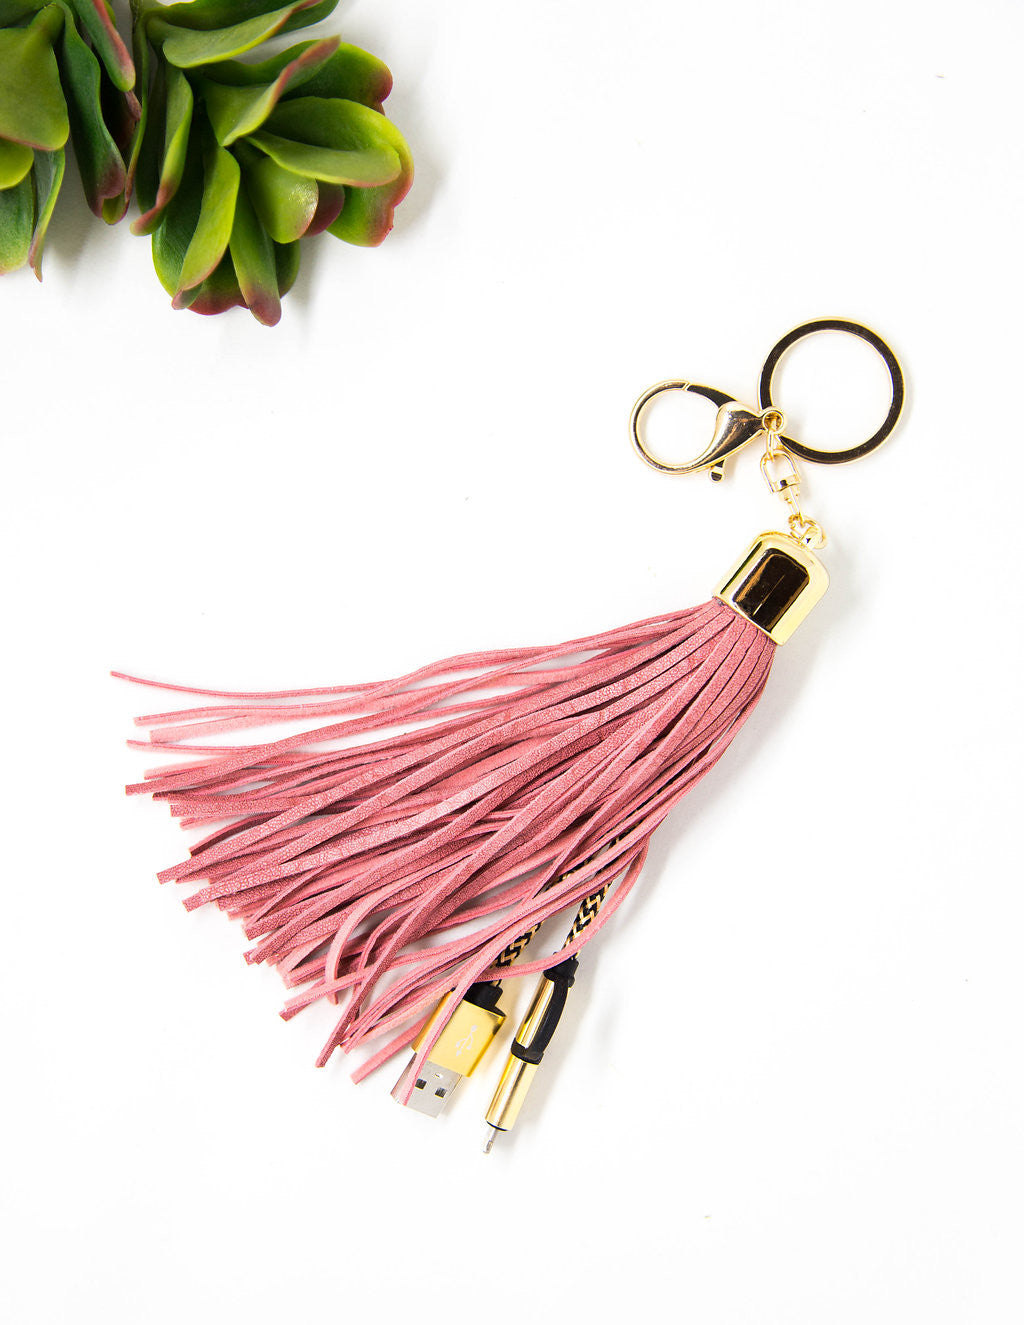 USB Leather Tassel Keychain + Charging Cord, Accessories by Jamie - Gingerly Witty